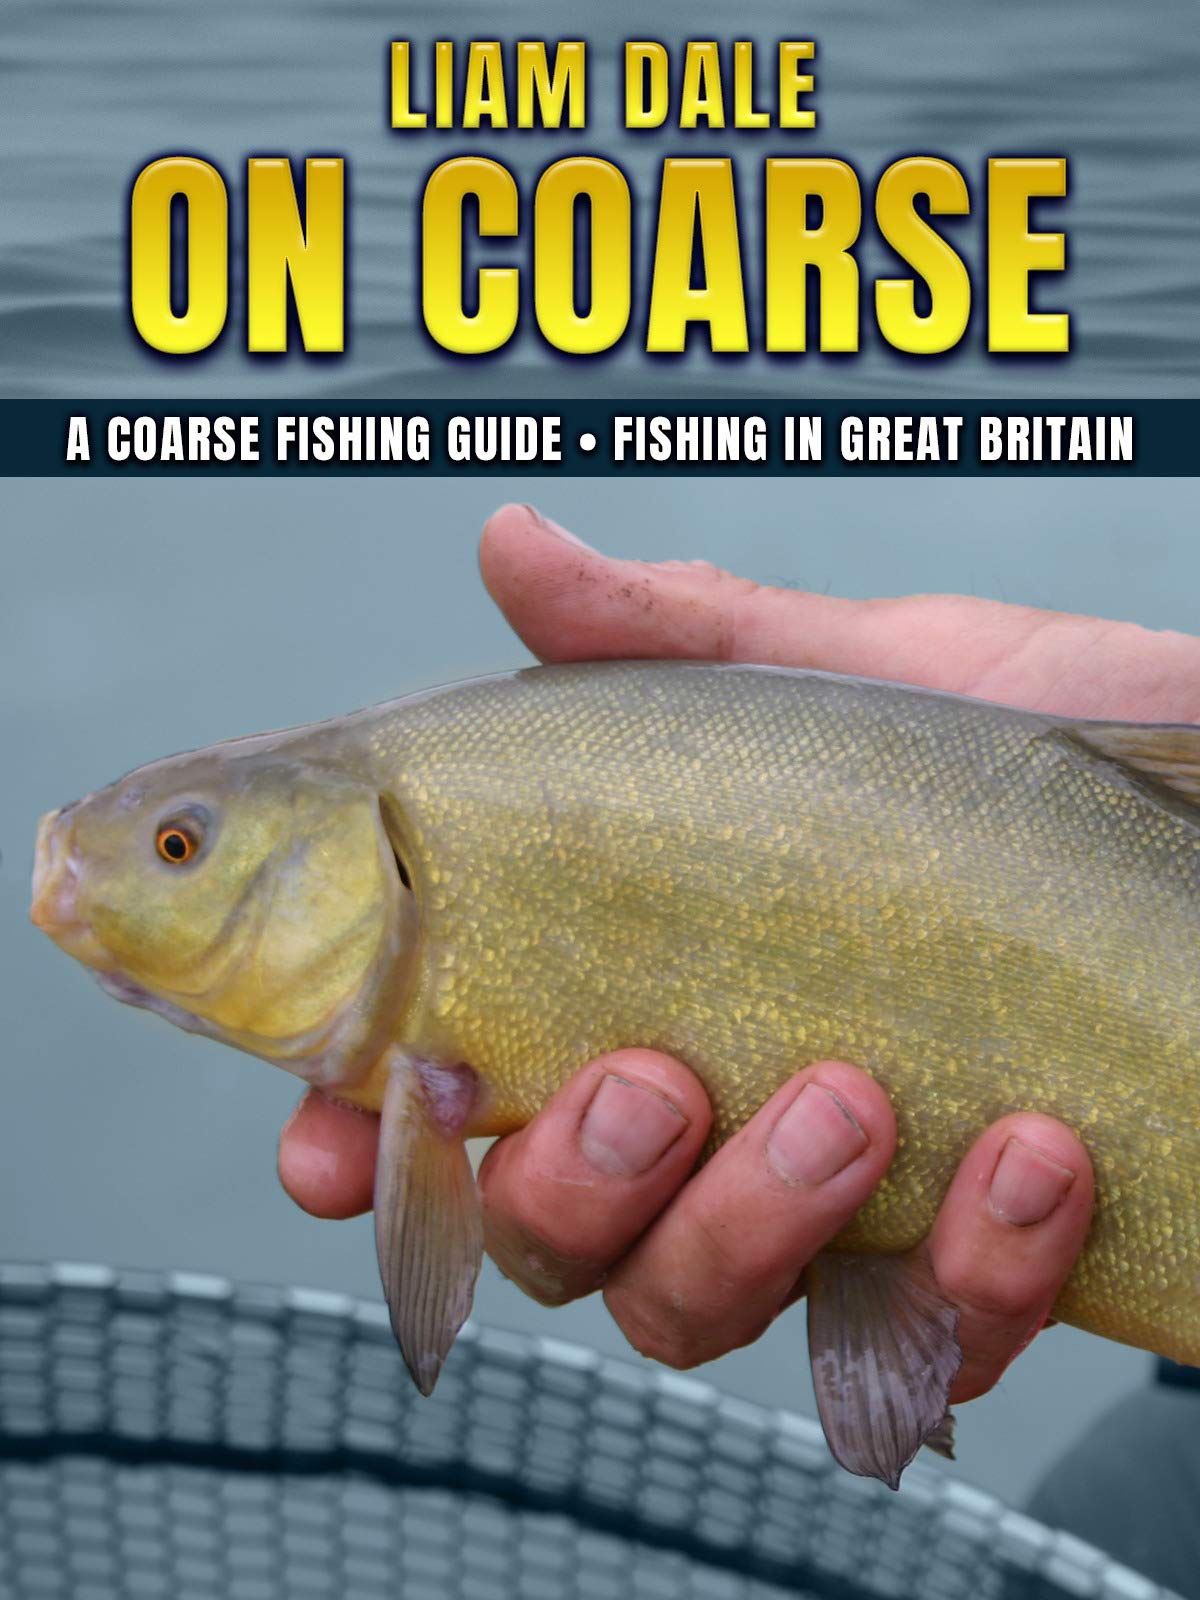 Liam Dale On Coarse: A Coarse Fishing Guide - Fishing in Great Britain